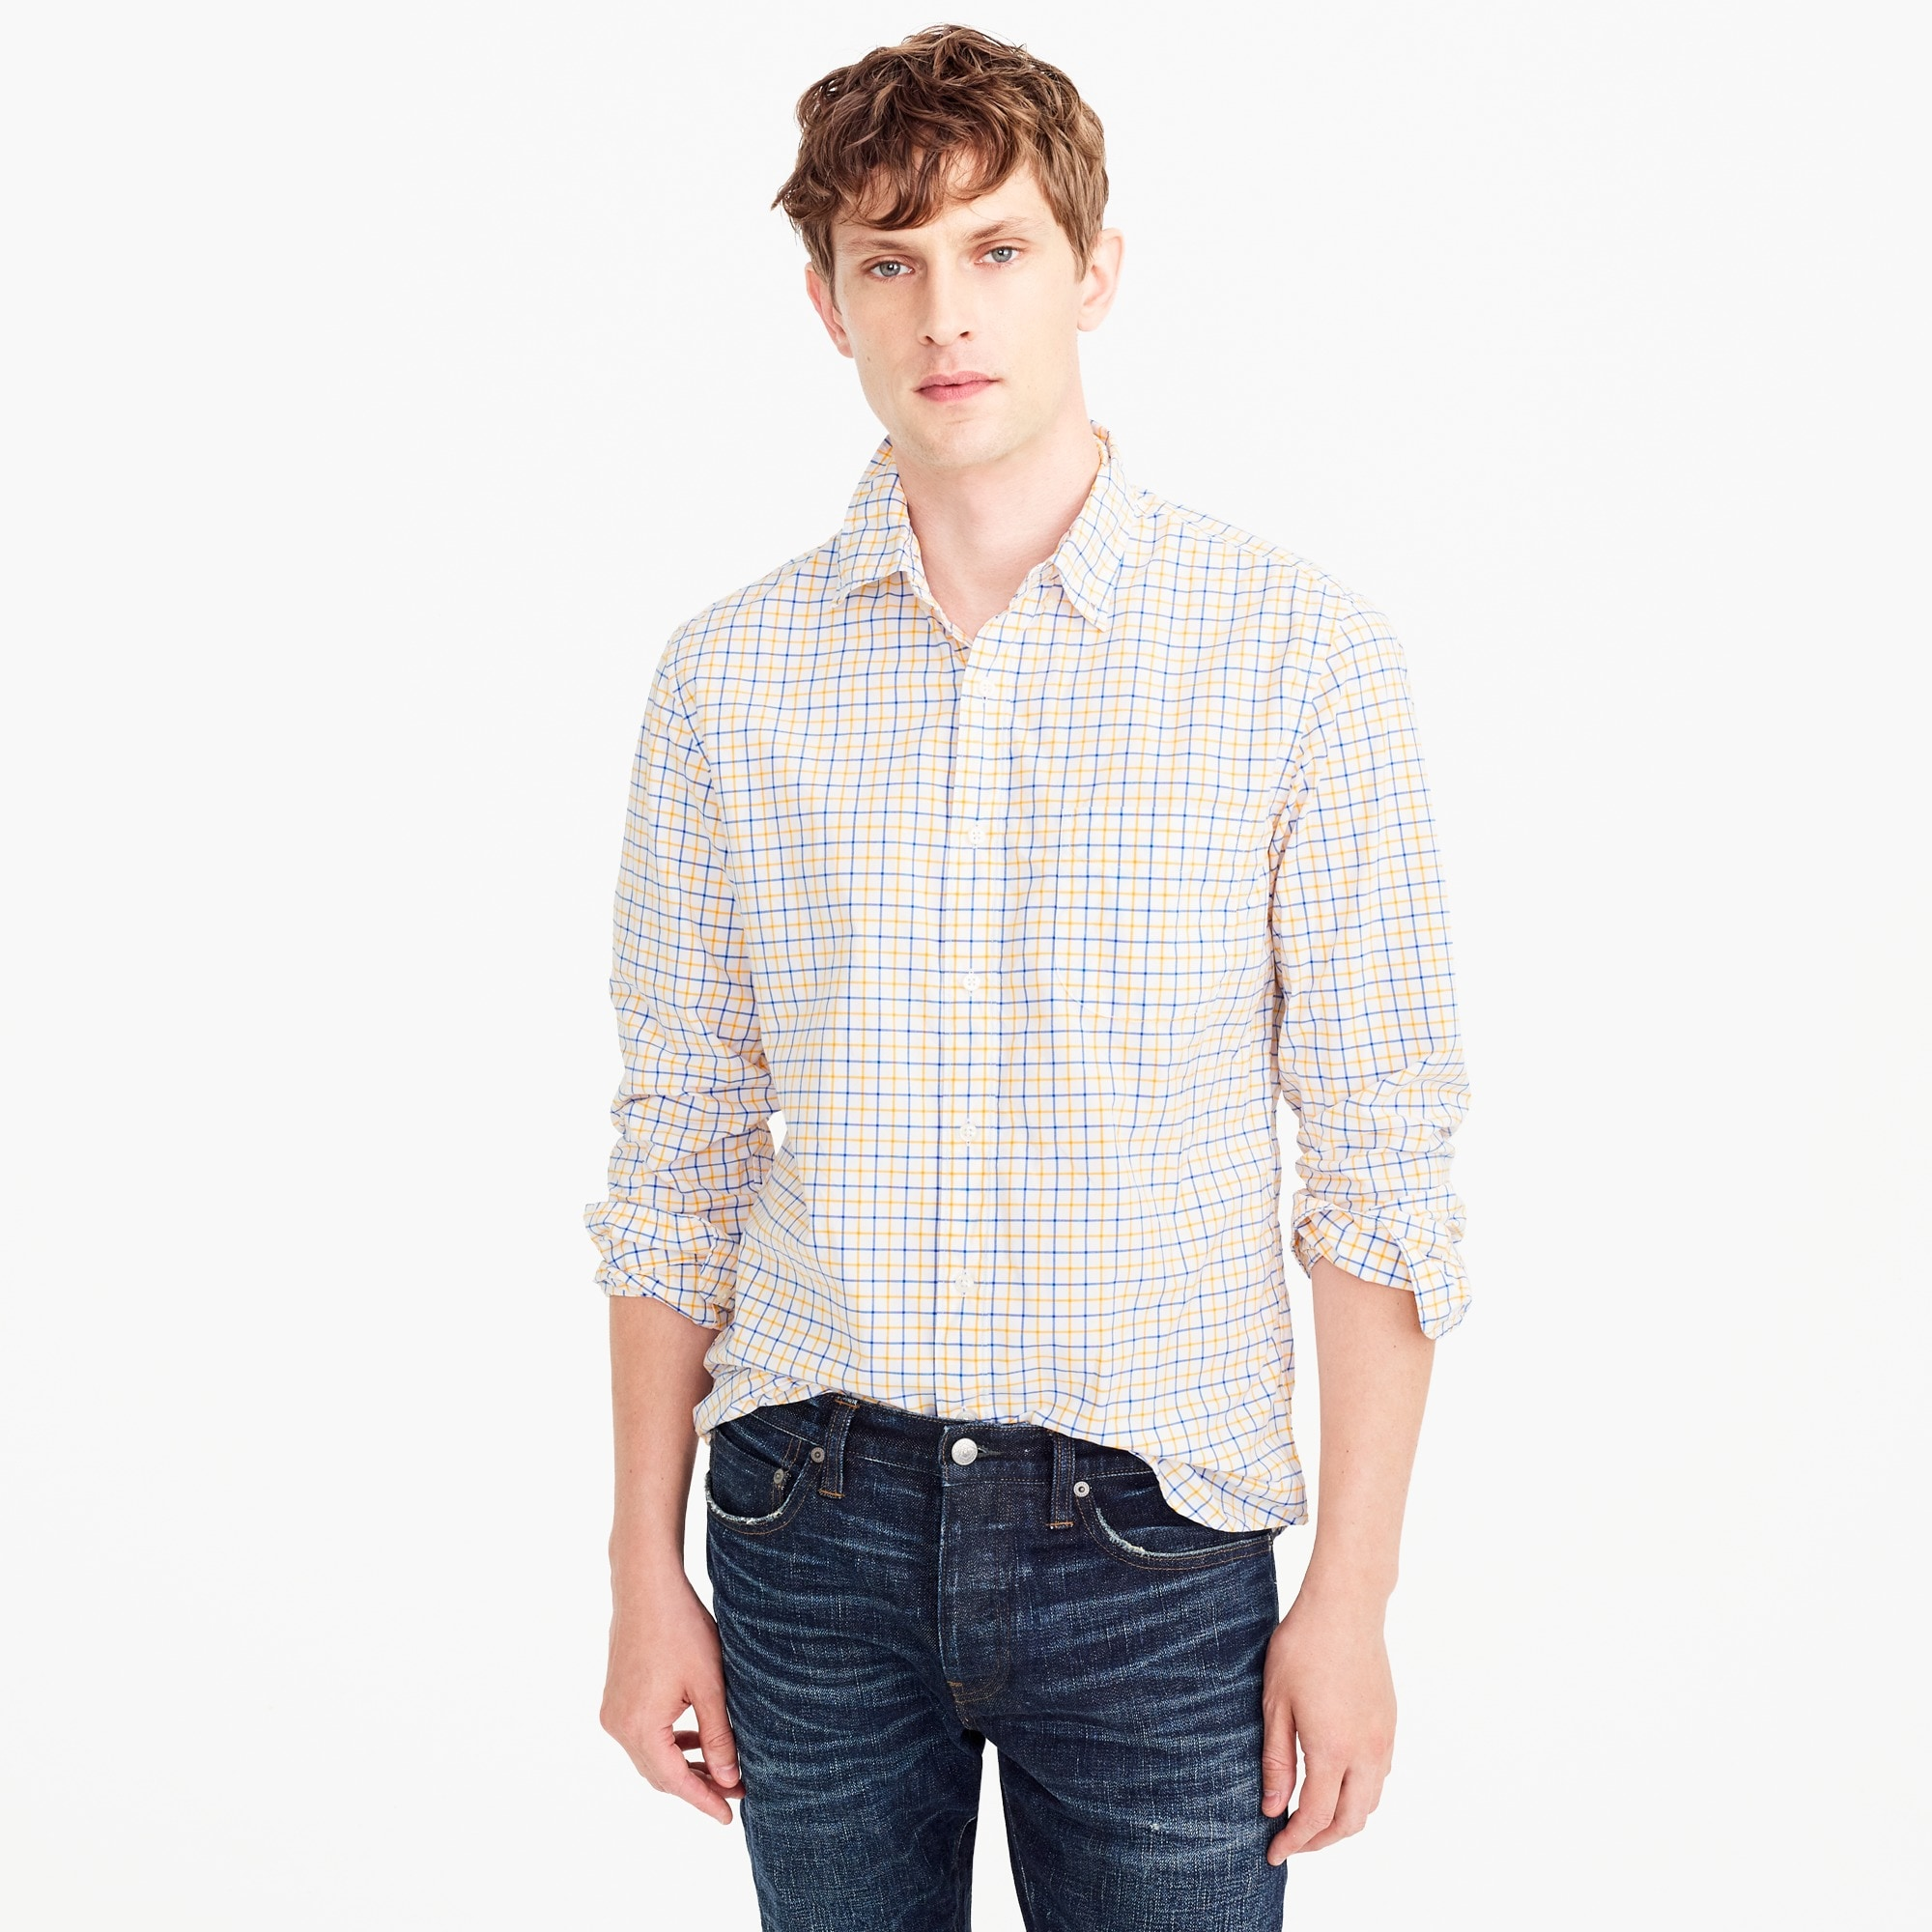 Slim Secret Wash shirt in yellow-and-blue check